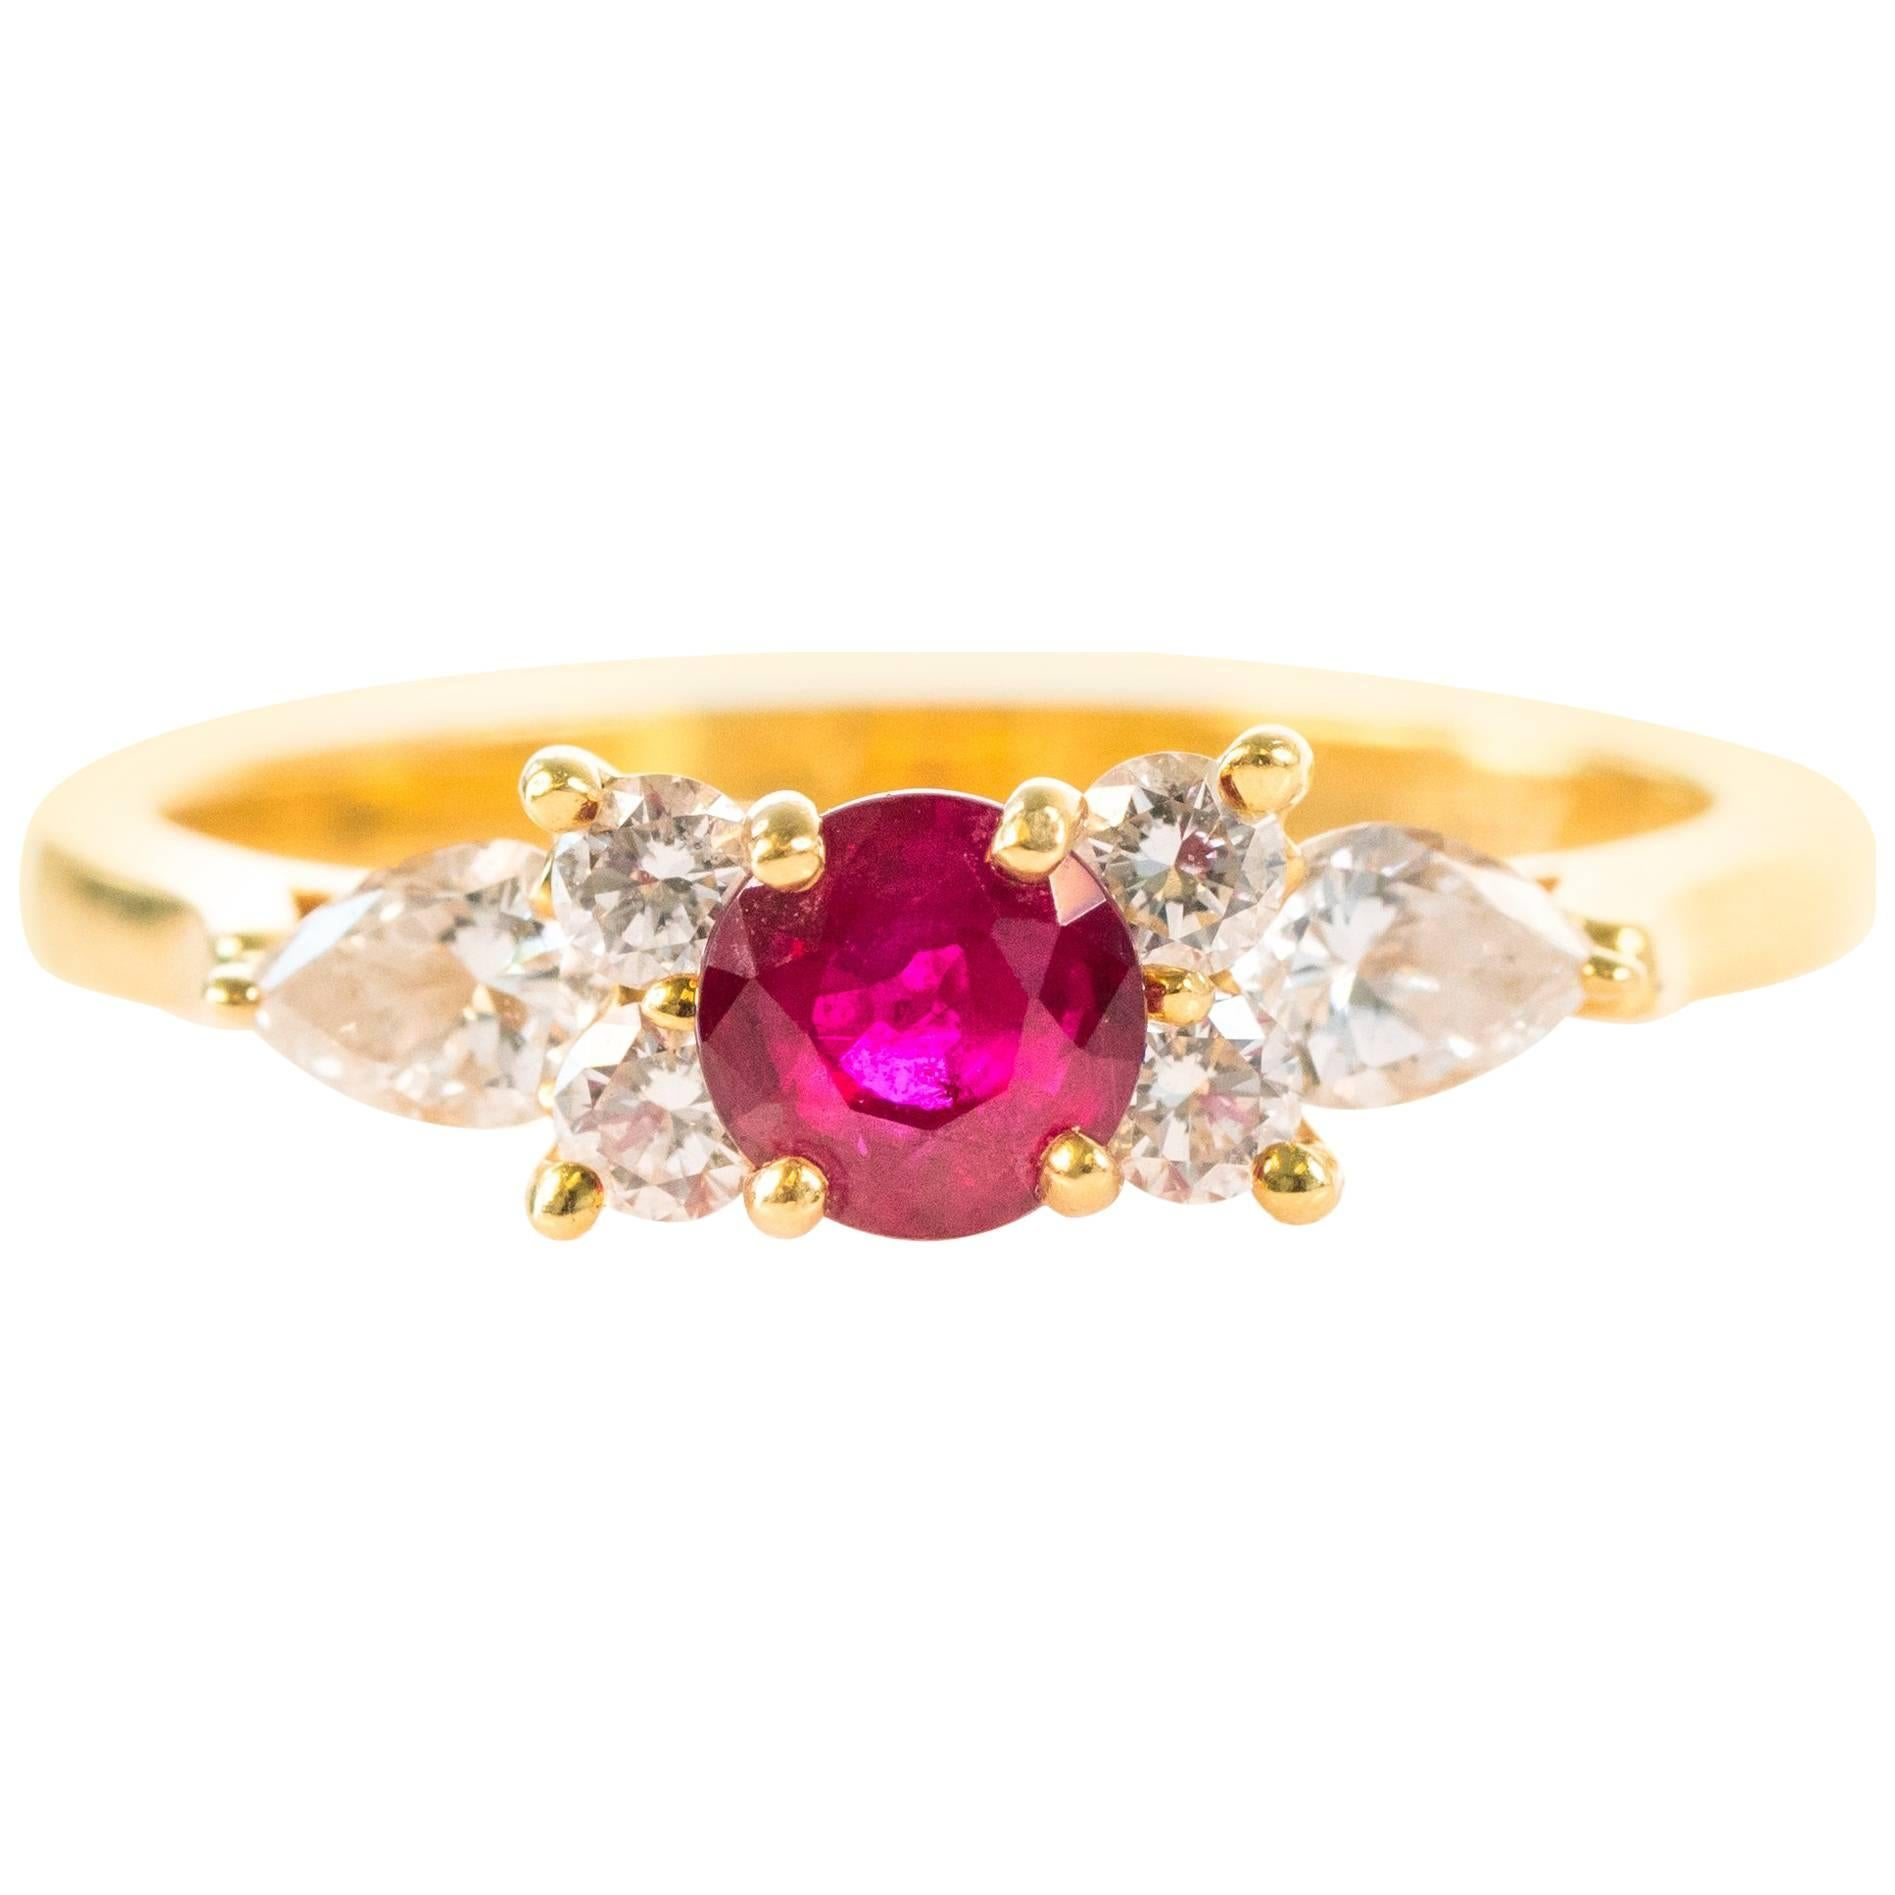 Tiffany & Co .40 Carat Red Ruby, Diamond and 18K Gold Ring